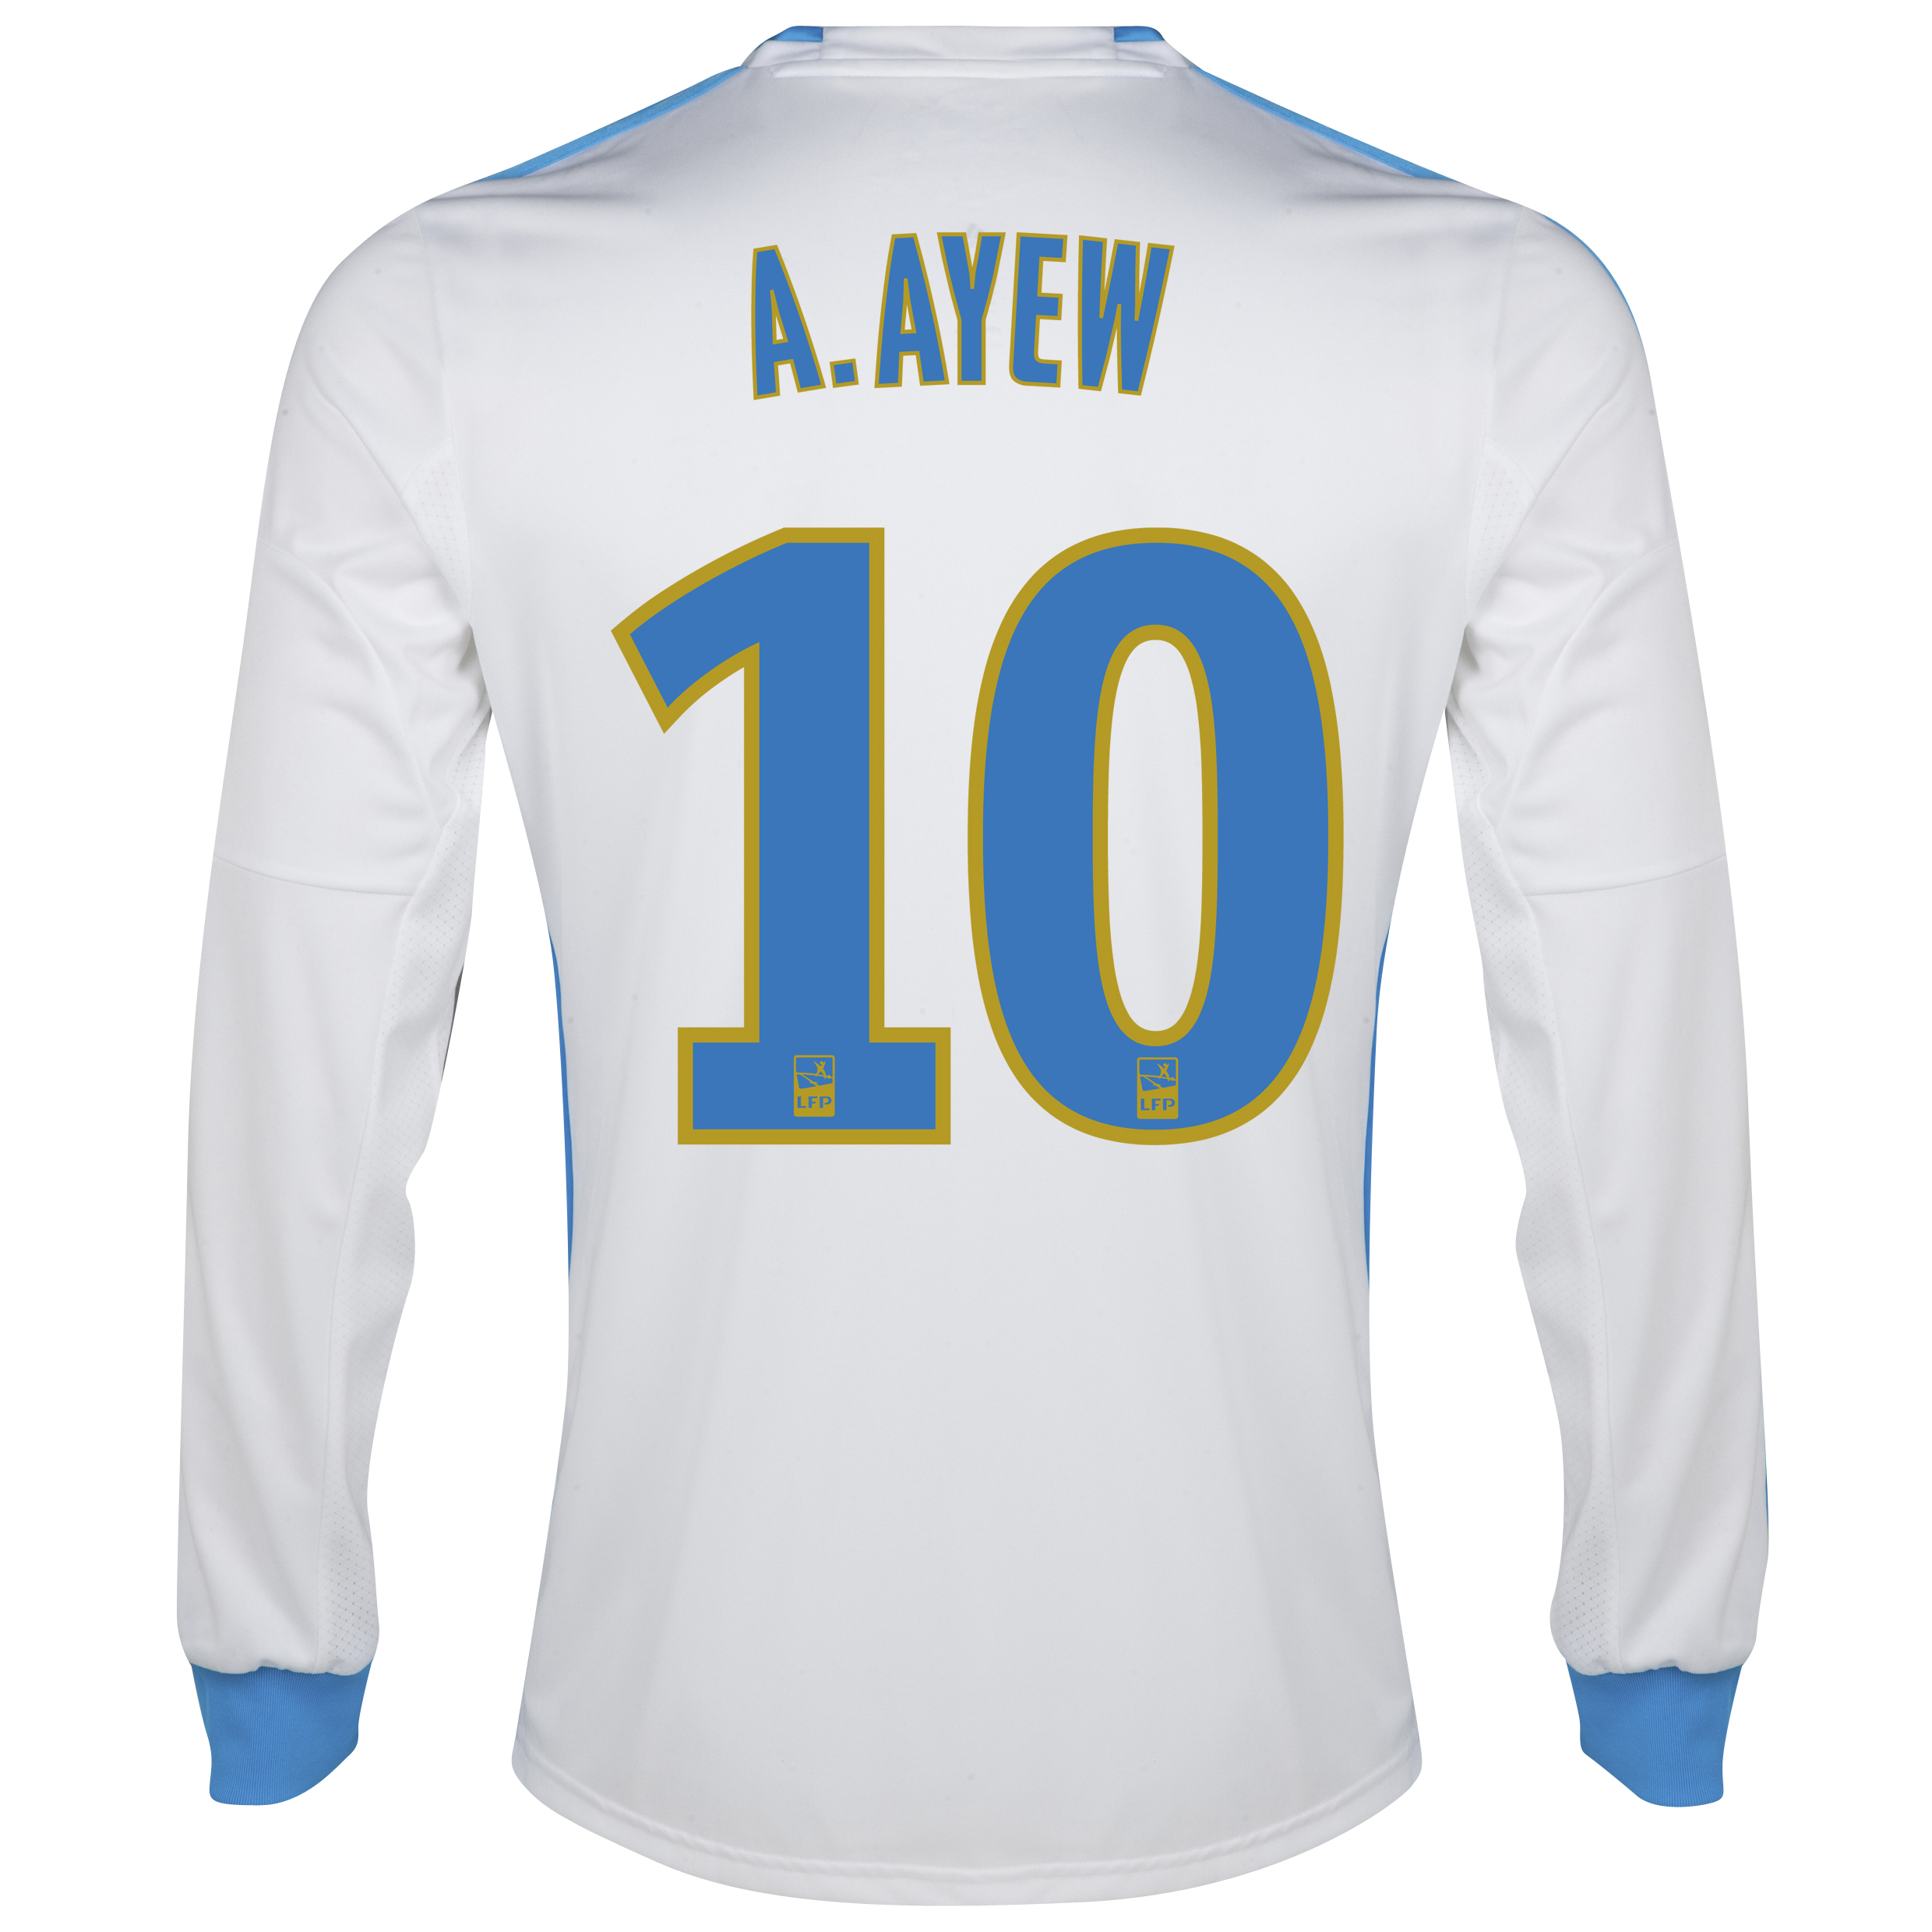 Olympique De Marseille Home Shirt LS 2013/14 - Mens White with A.Ayew 10 printing